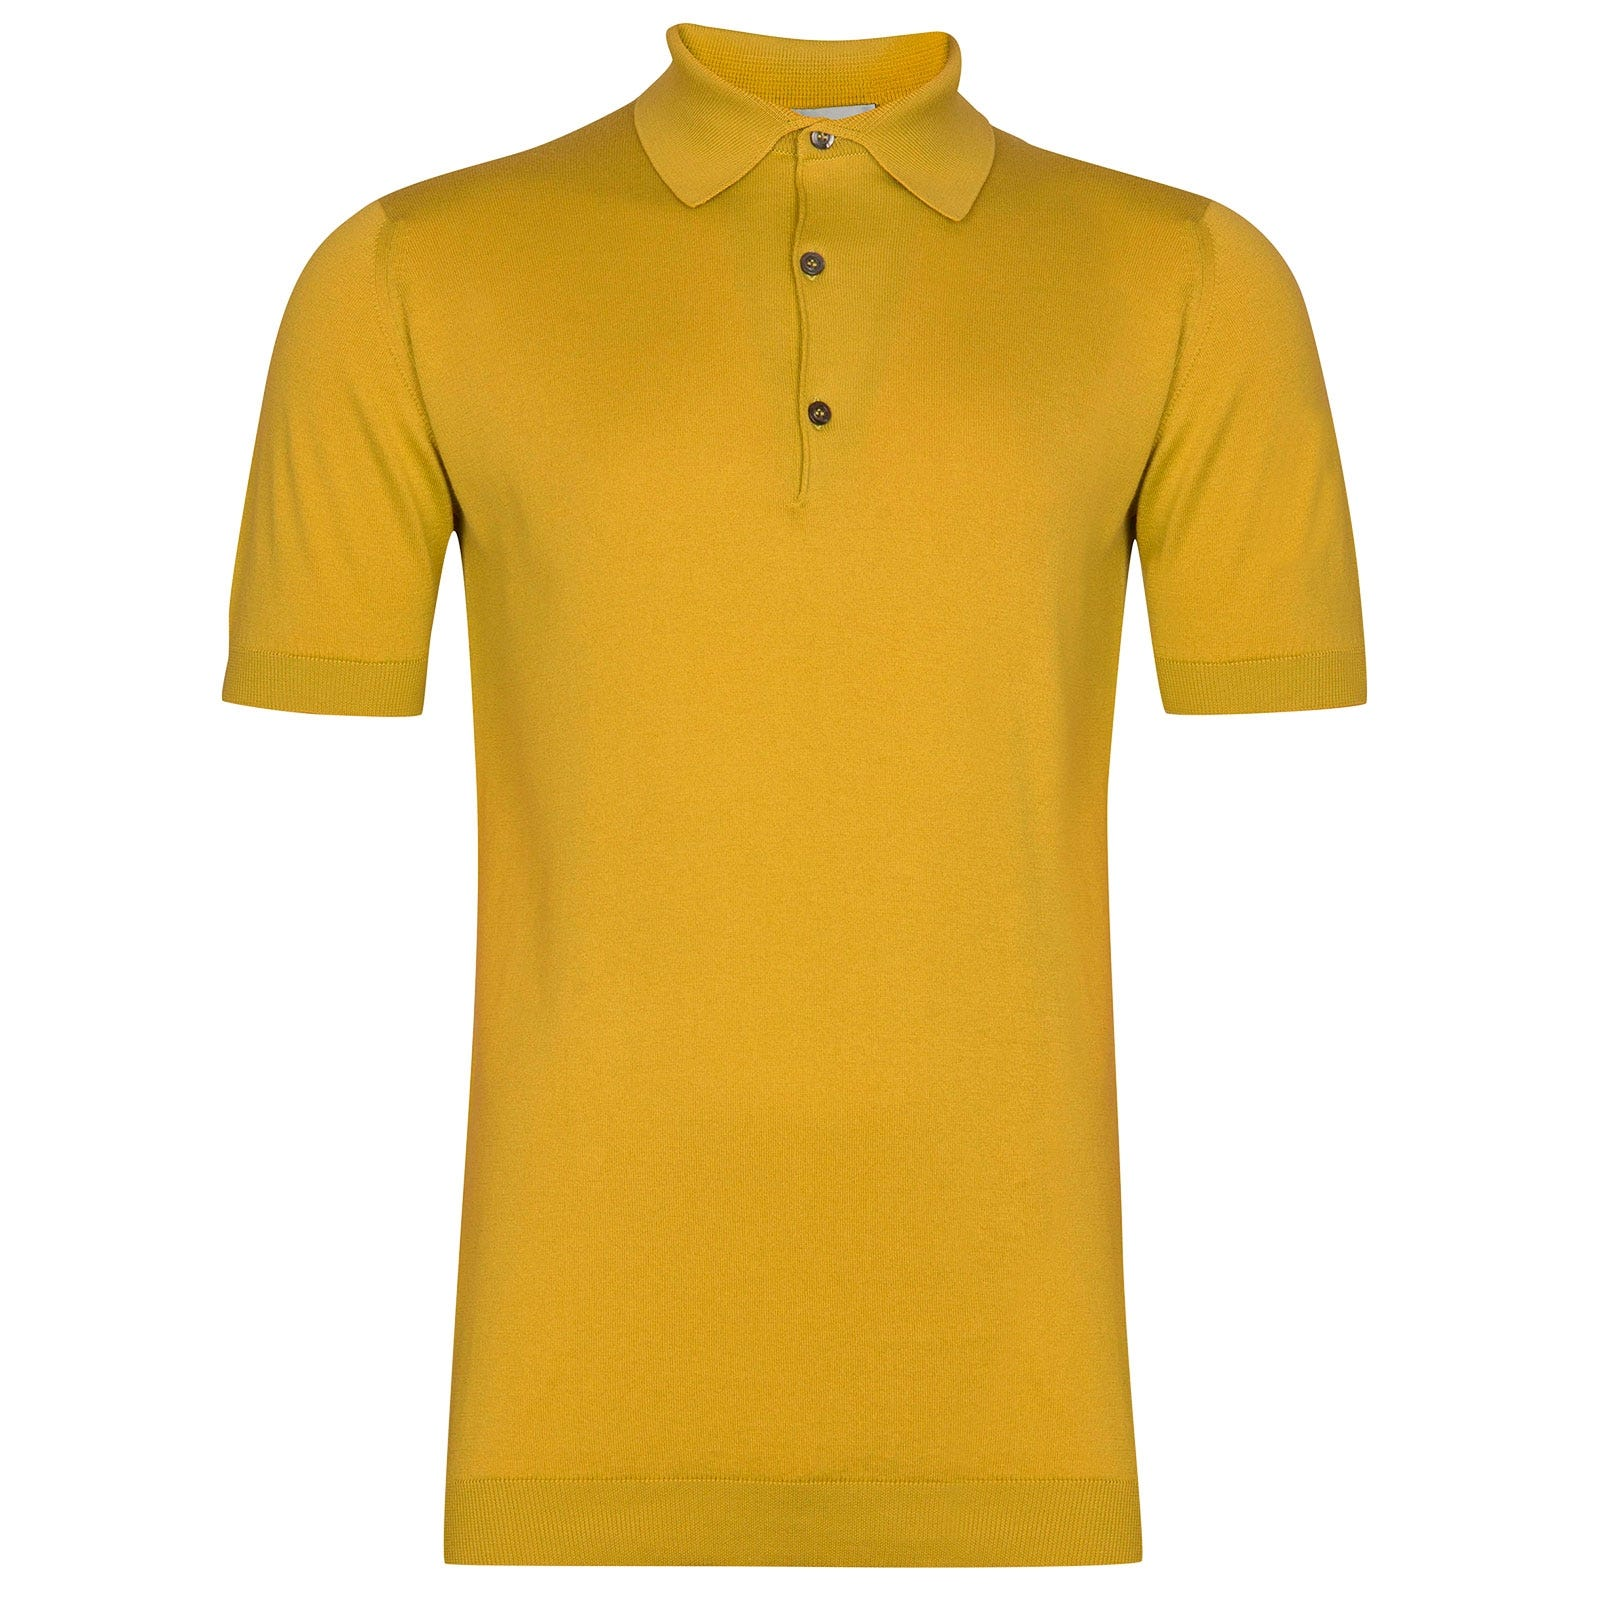 John Smedley Adrian Sea Island Cotton Shirt in Tailors Yellow-L